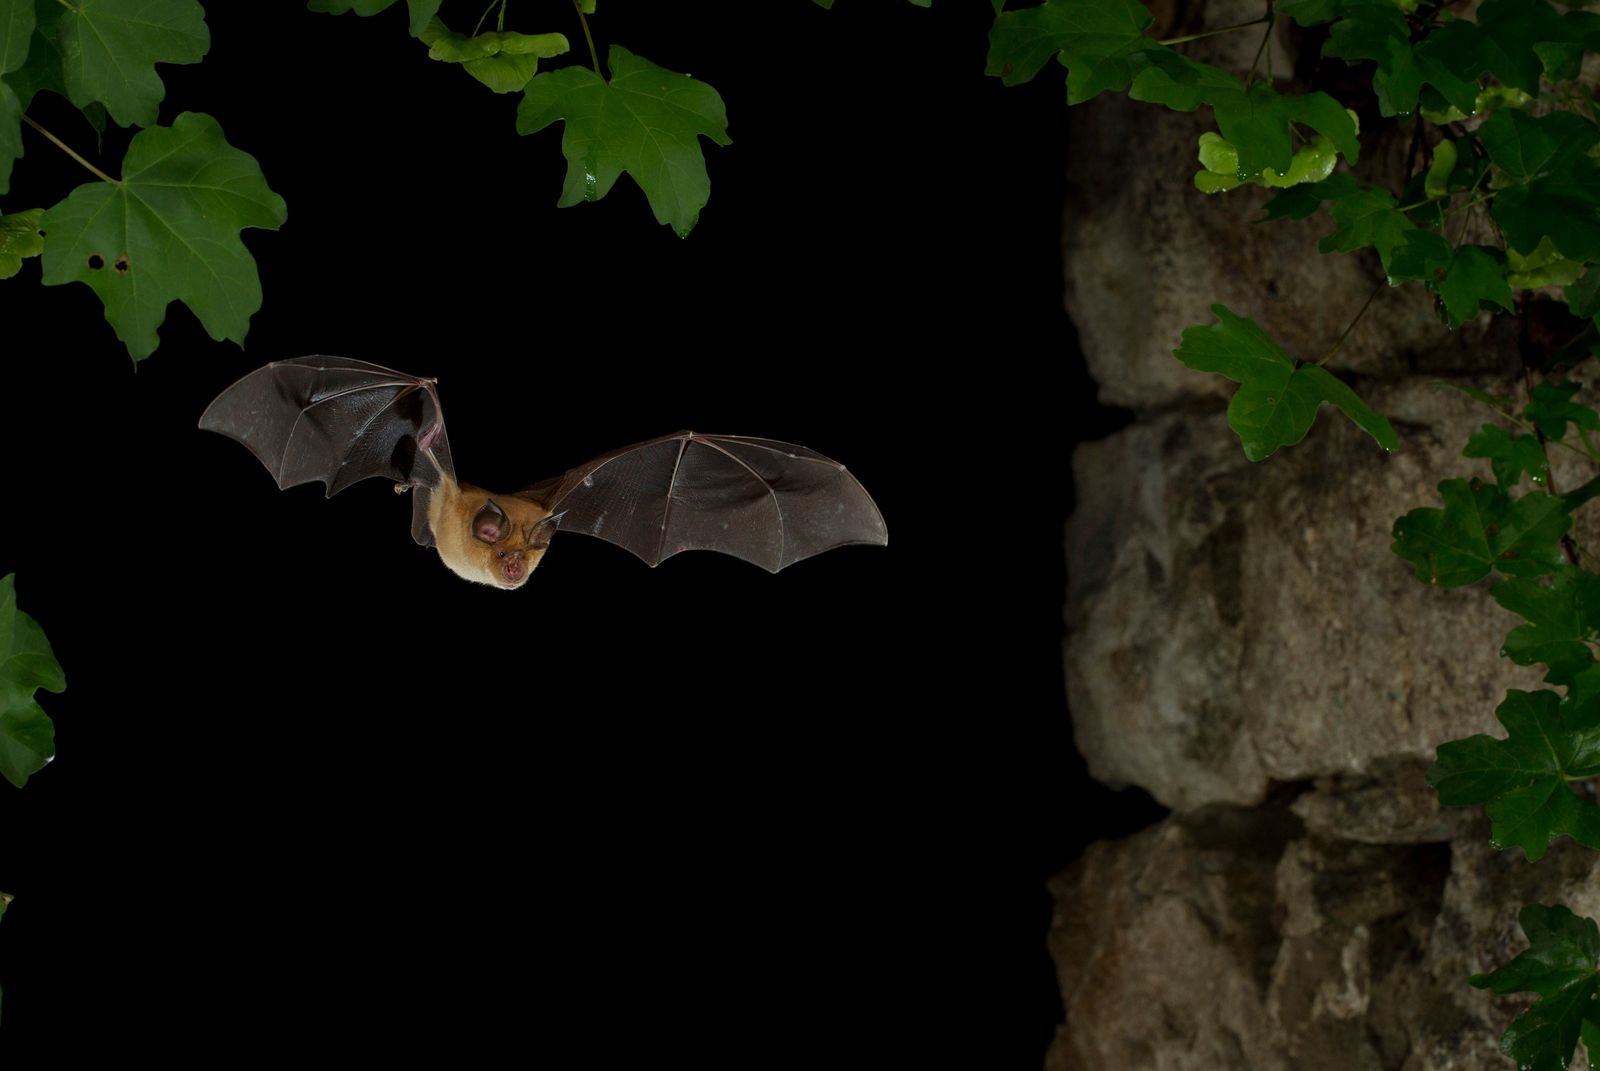 Mediterranean Horseshoe Bat (Rhinolophus Euryale) in flight, North Bulgaria. Bats are so associated with this area ...